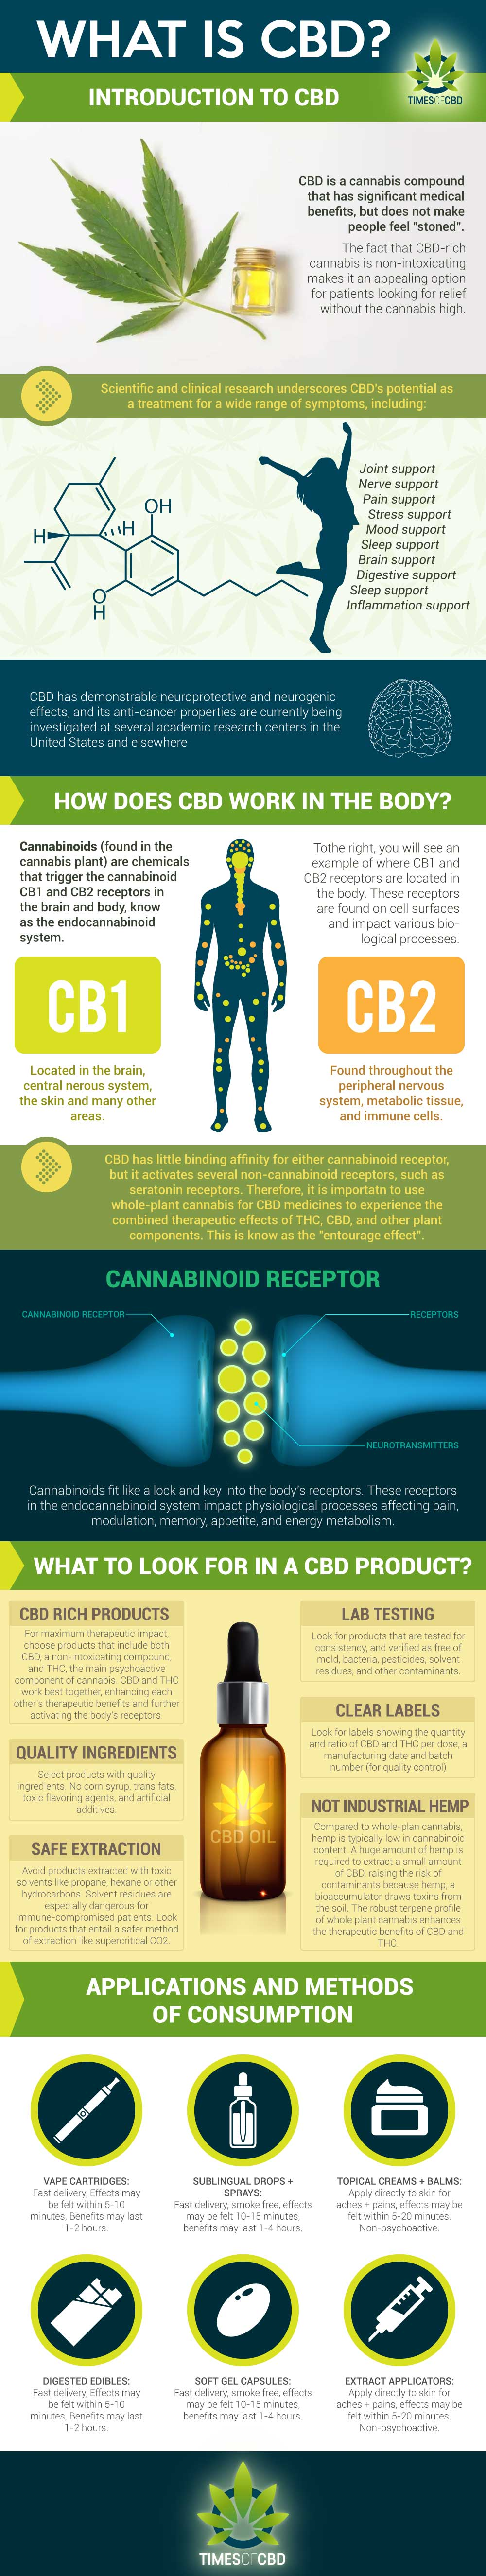 What-is-CBD infographic